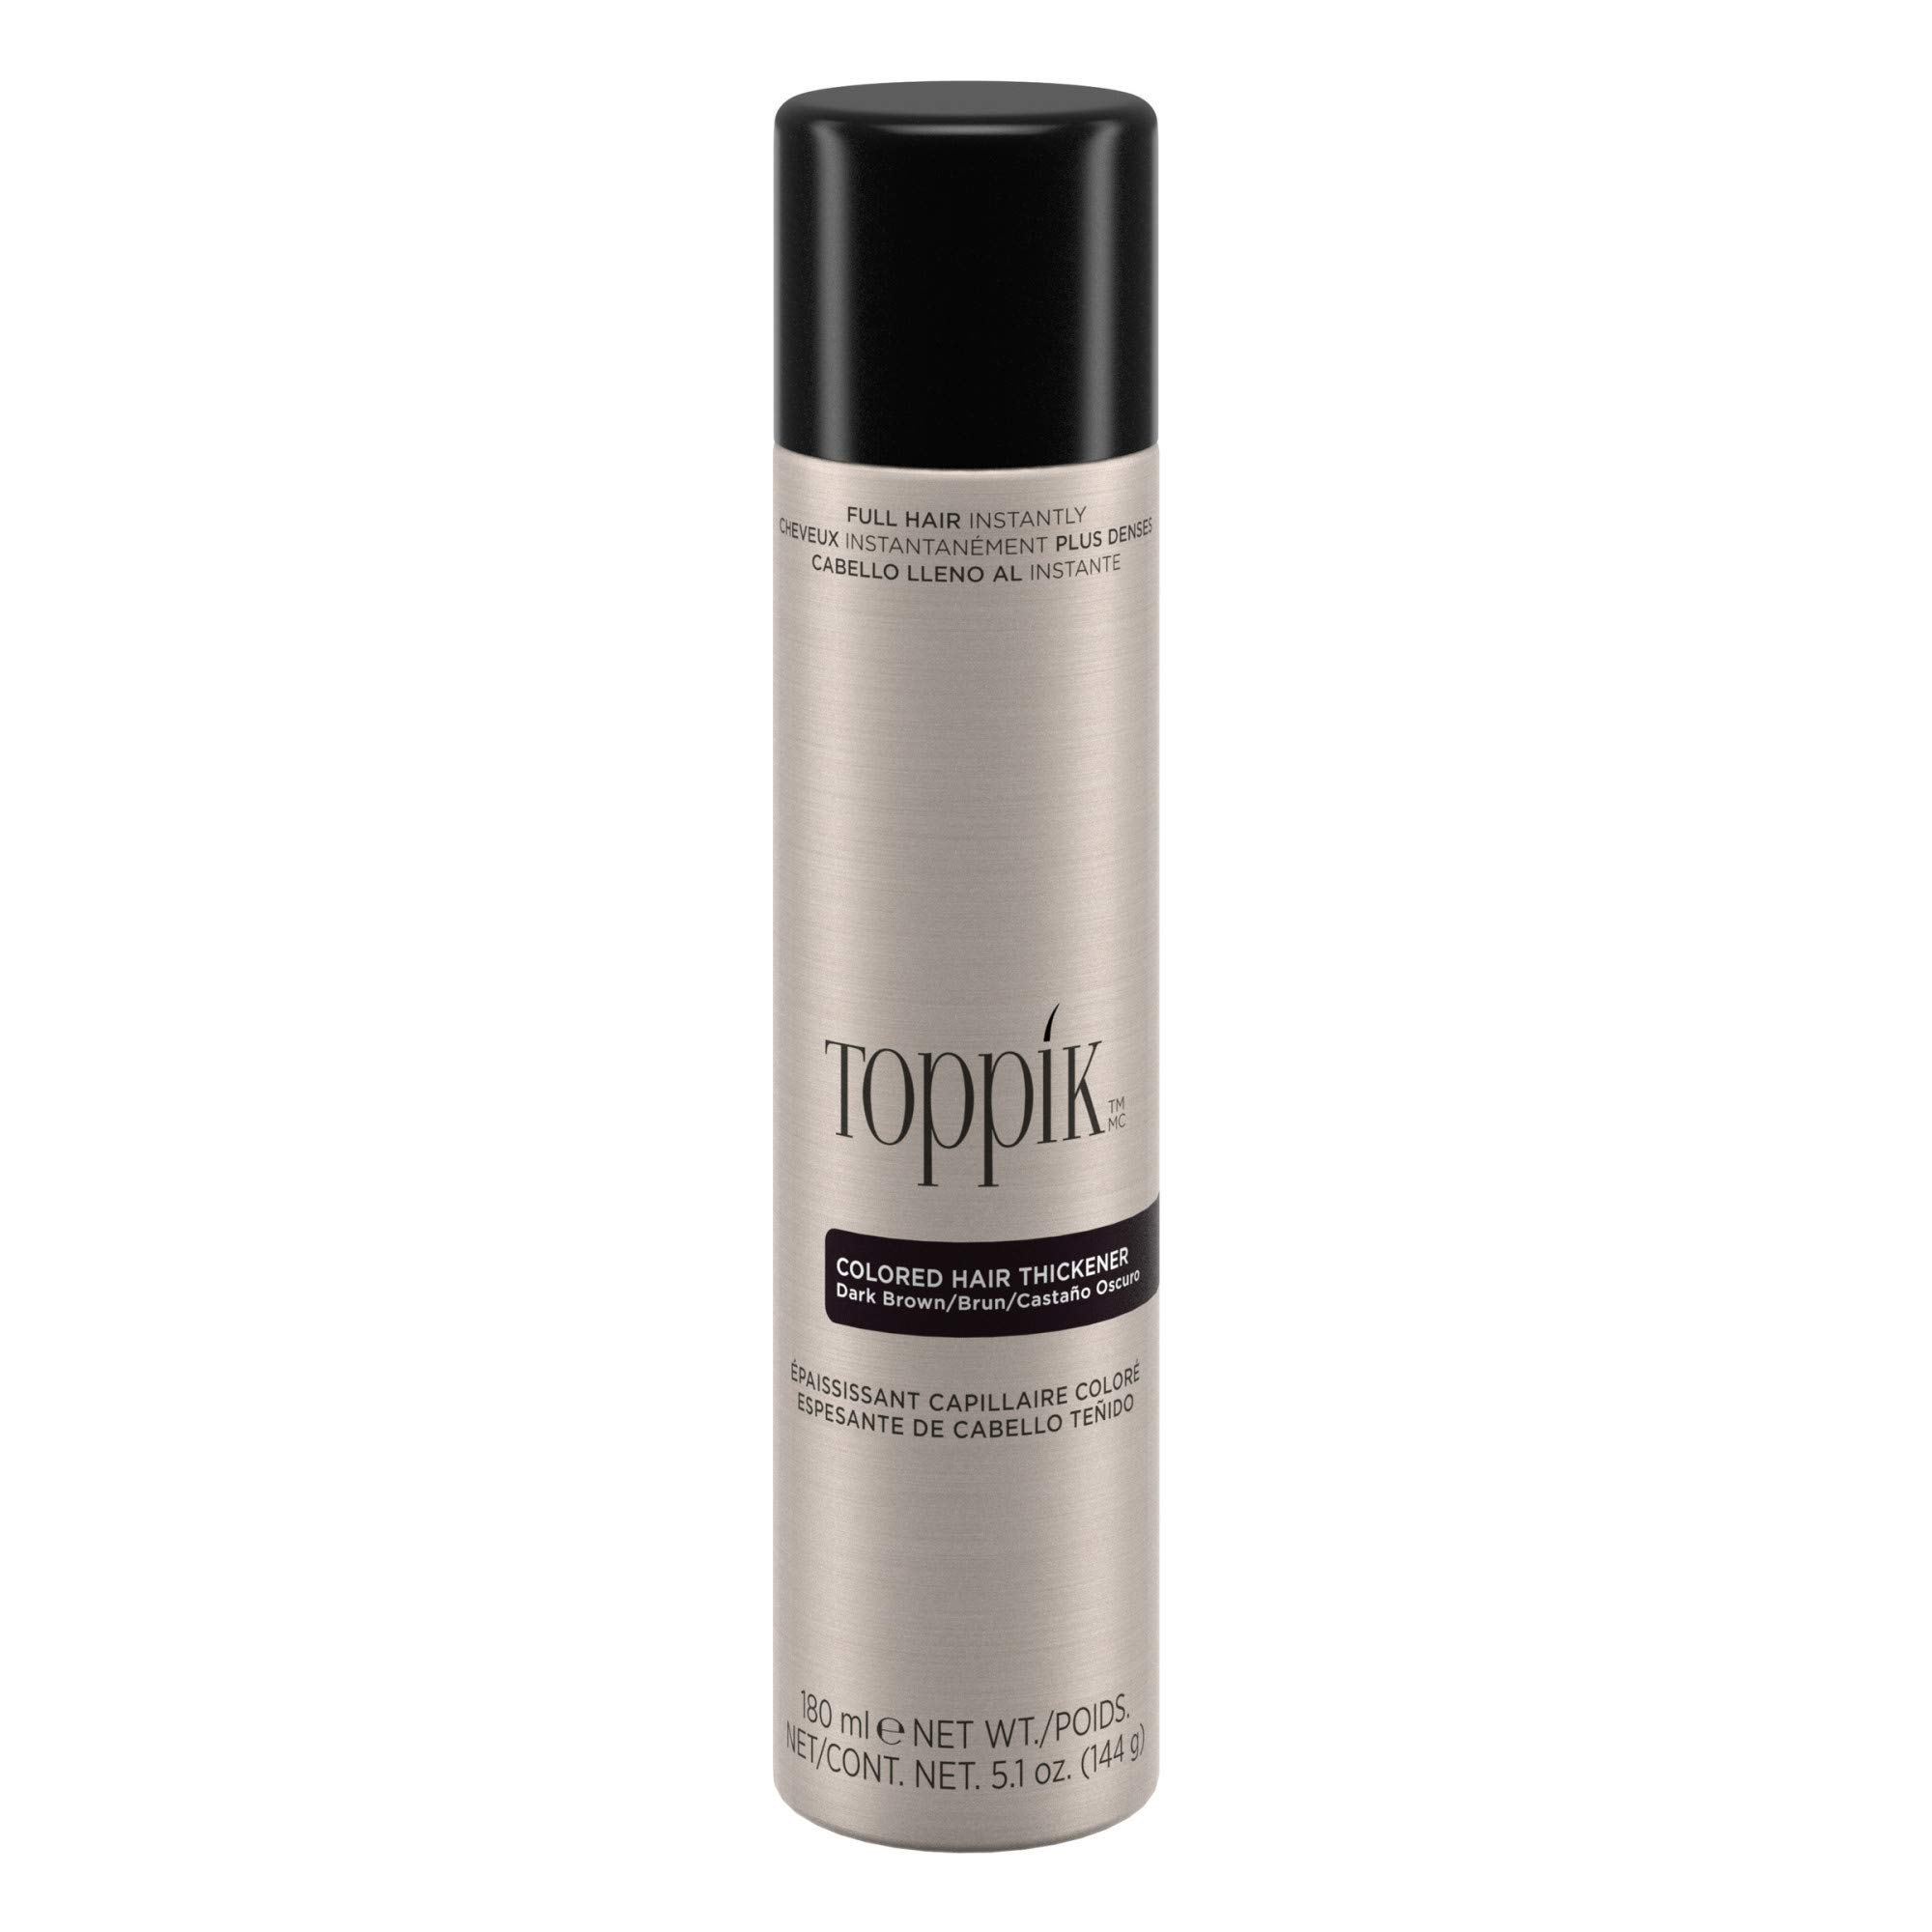 Toppik Colored Hair Thickener, Dark Brown, 5.1 OZ by TOPPIK